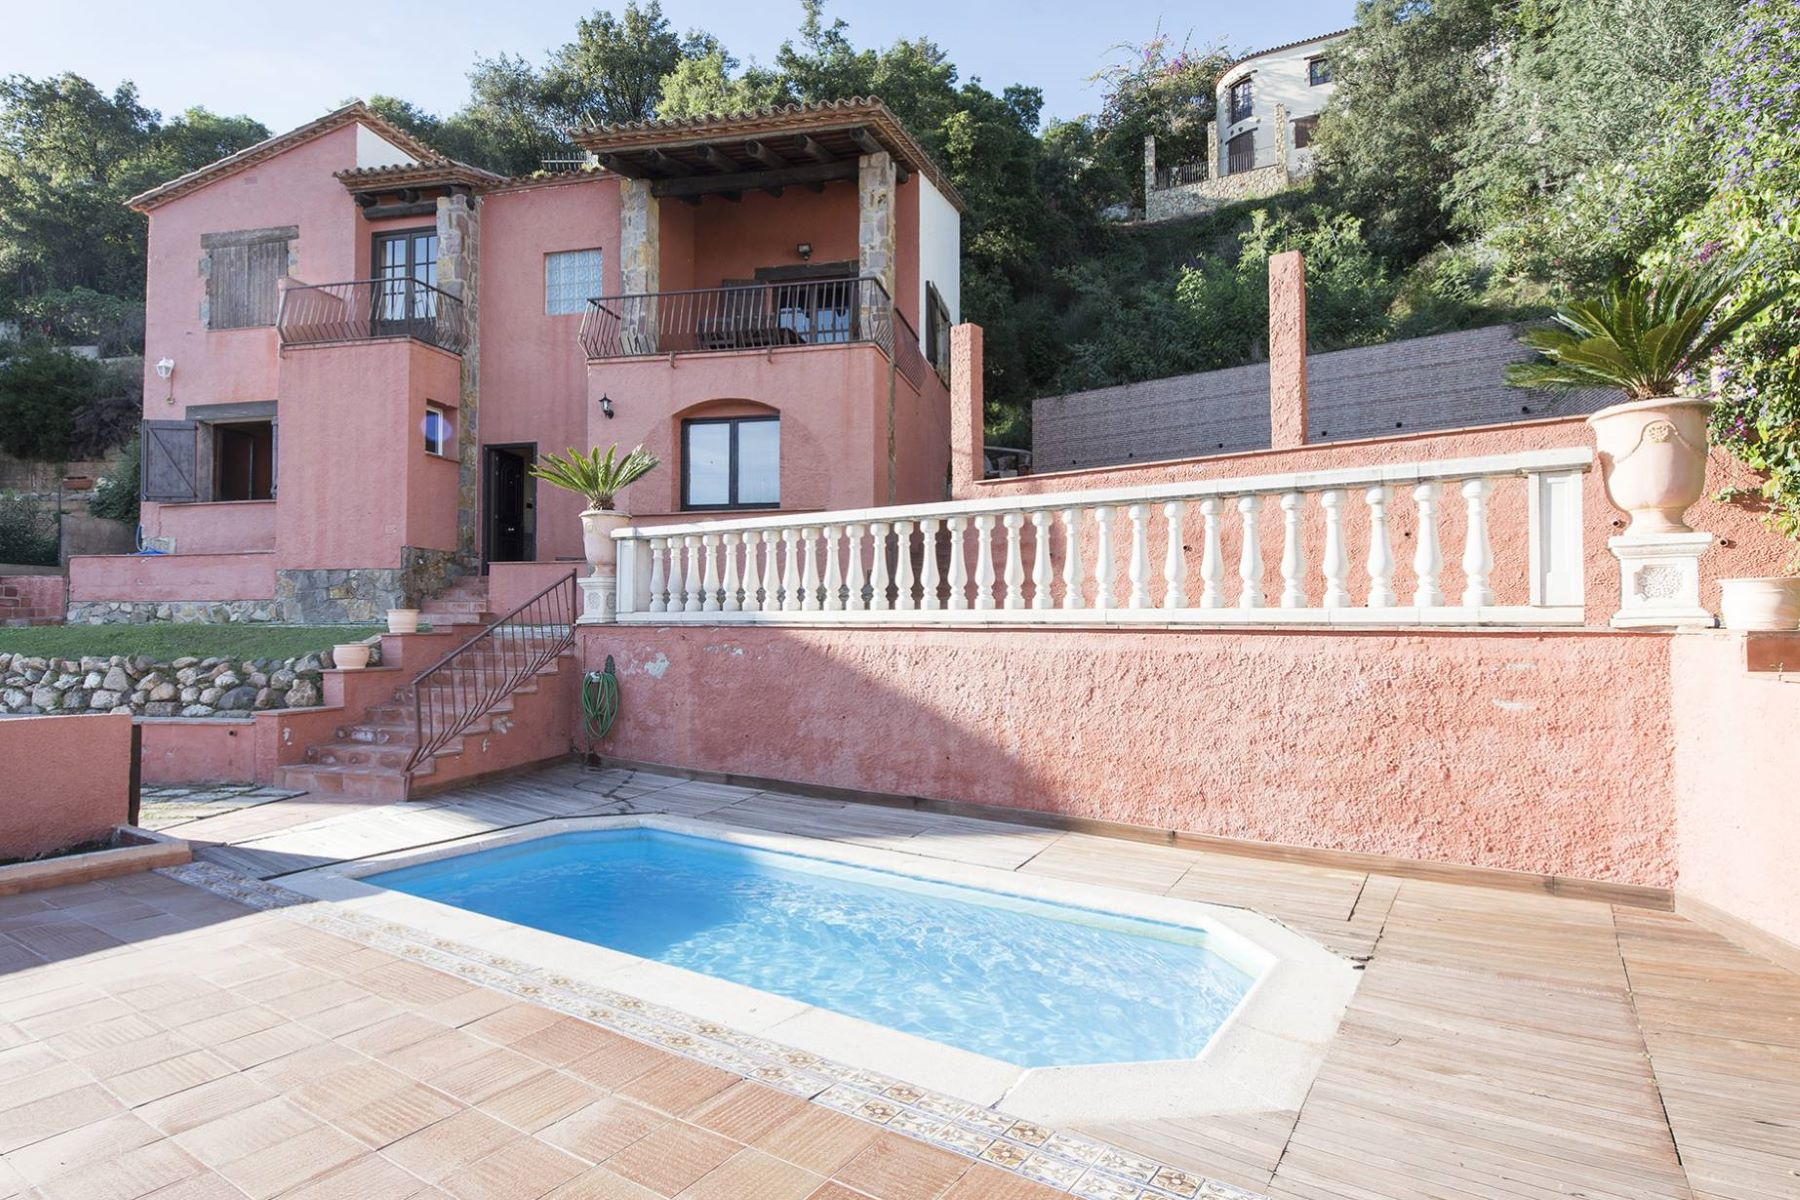 Single Family Home for Sale at House to renovate with sea and countryside views Sant Antoni De Calonge, Costa Brava, 17252 Spain